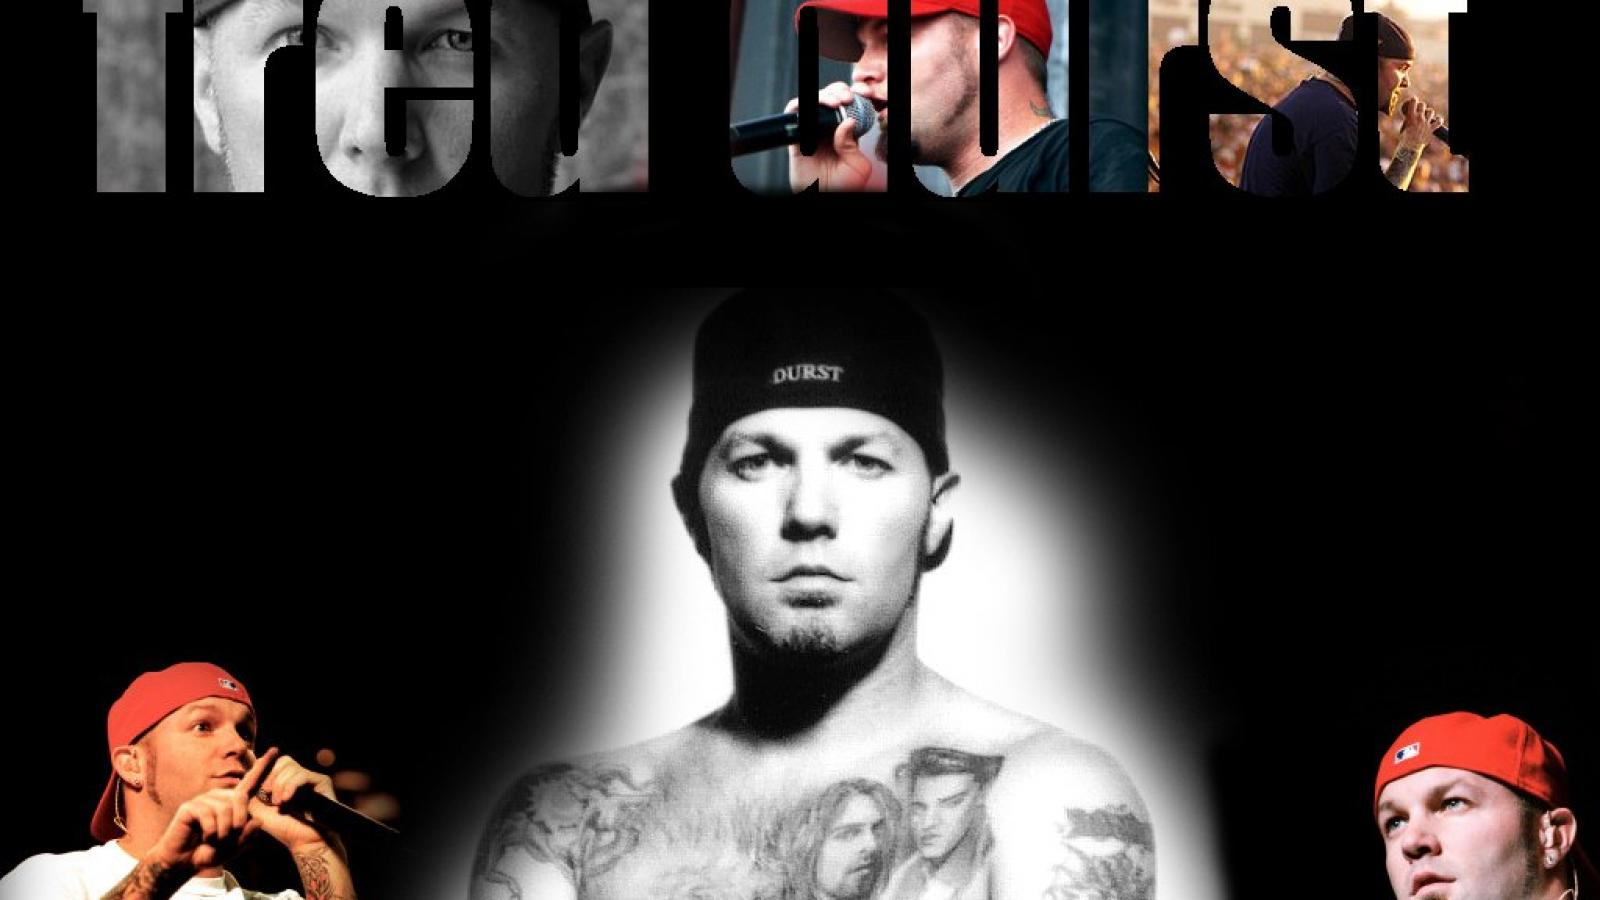 FRED DURST LIMP BIZKIT LL JUST LEAVE FLY HD WALLPAPER WALLPAPER 9786 1600x900